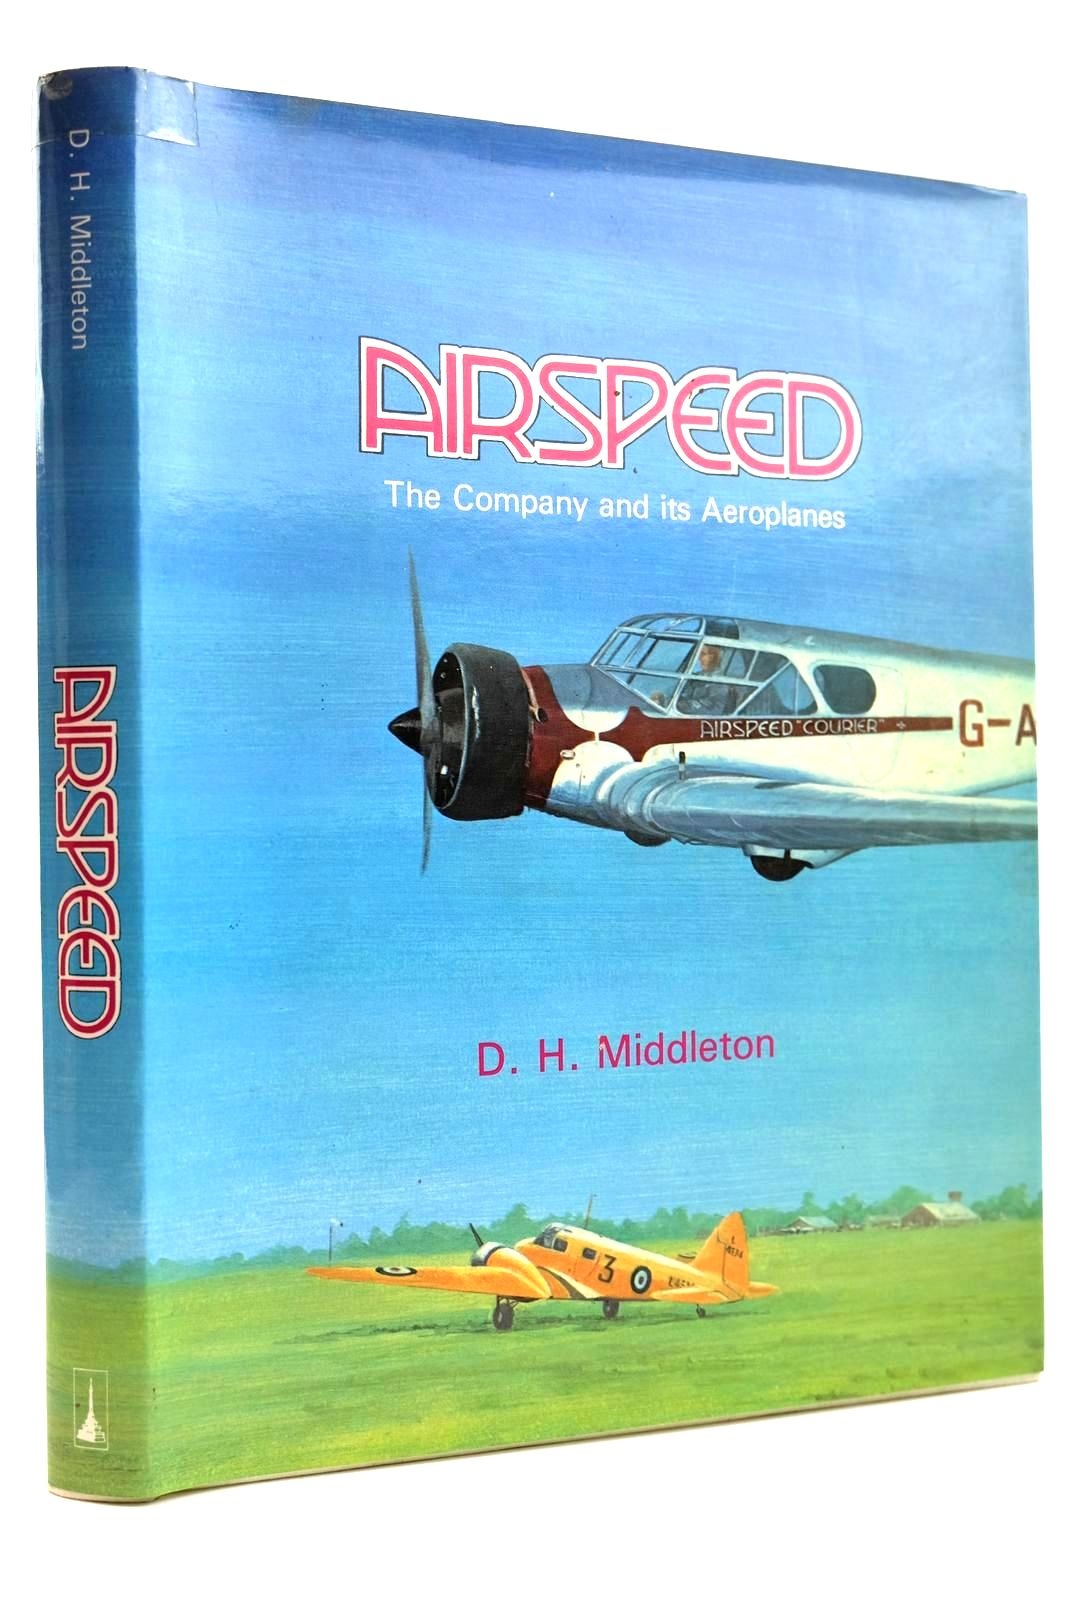 Photo of AIRSPEED THE COMPANY AND ITS AEROPLANES written by Middleton, D.H. published by Terence Dalton Limited (STOCK CODE: 2132087)  for sale by Stella & Rose's Books